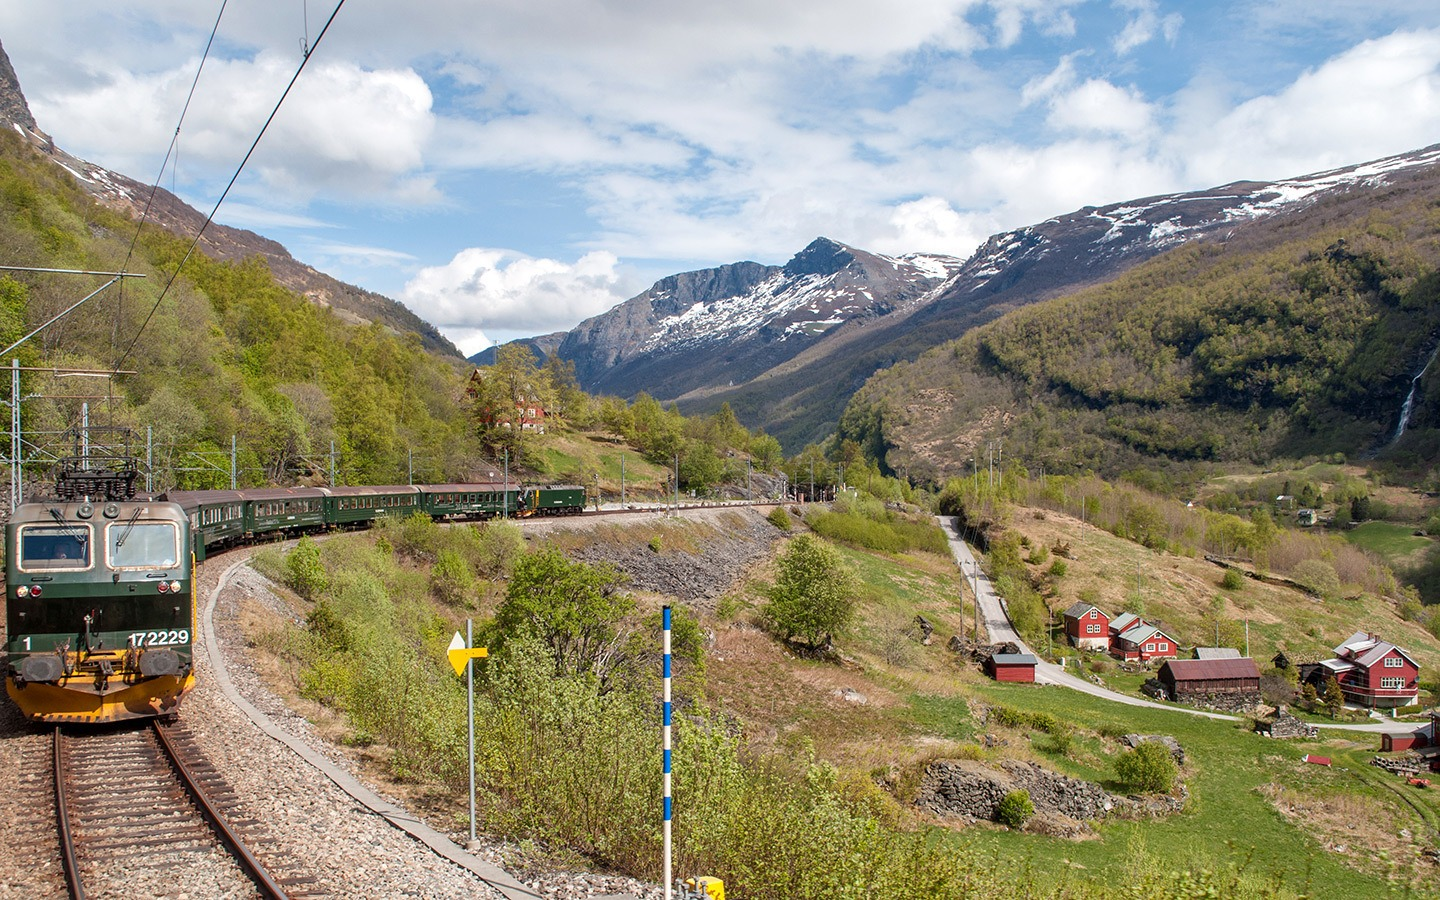 The Flam Railway: Norway's most scenic train journey